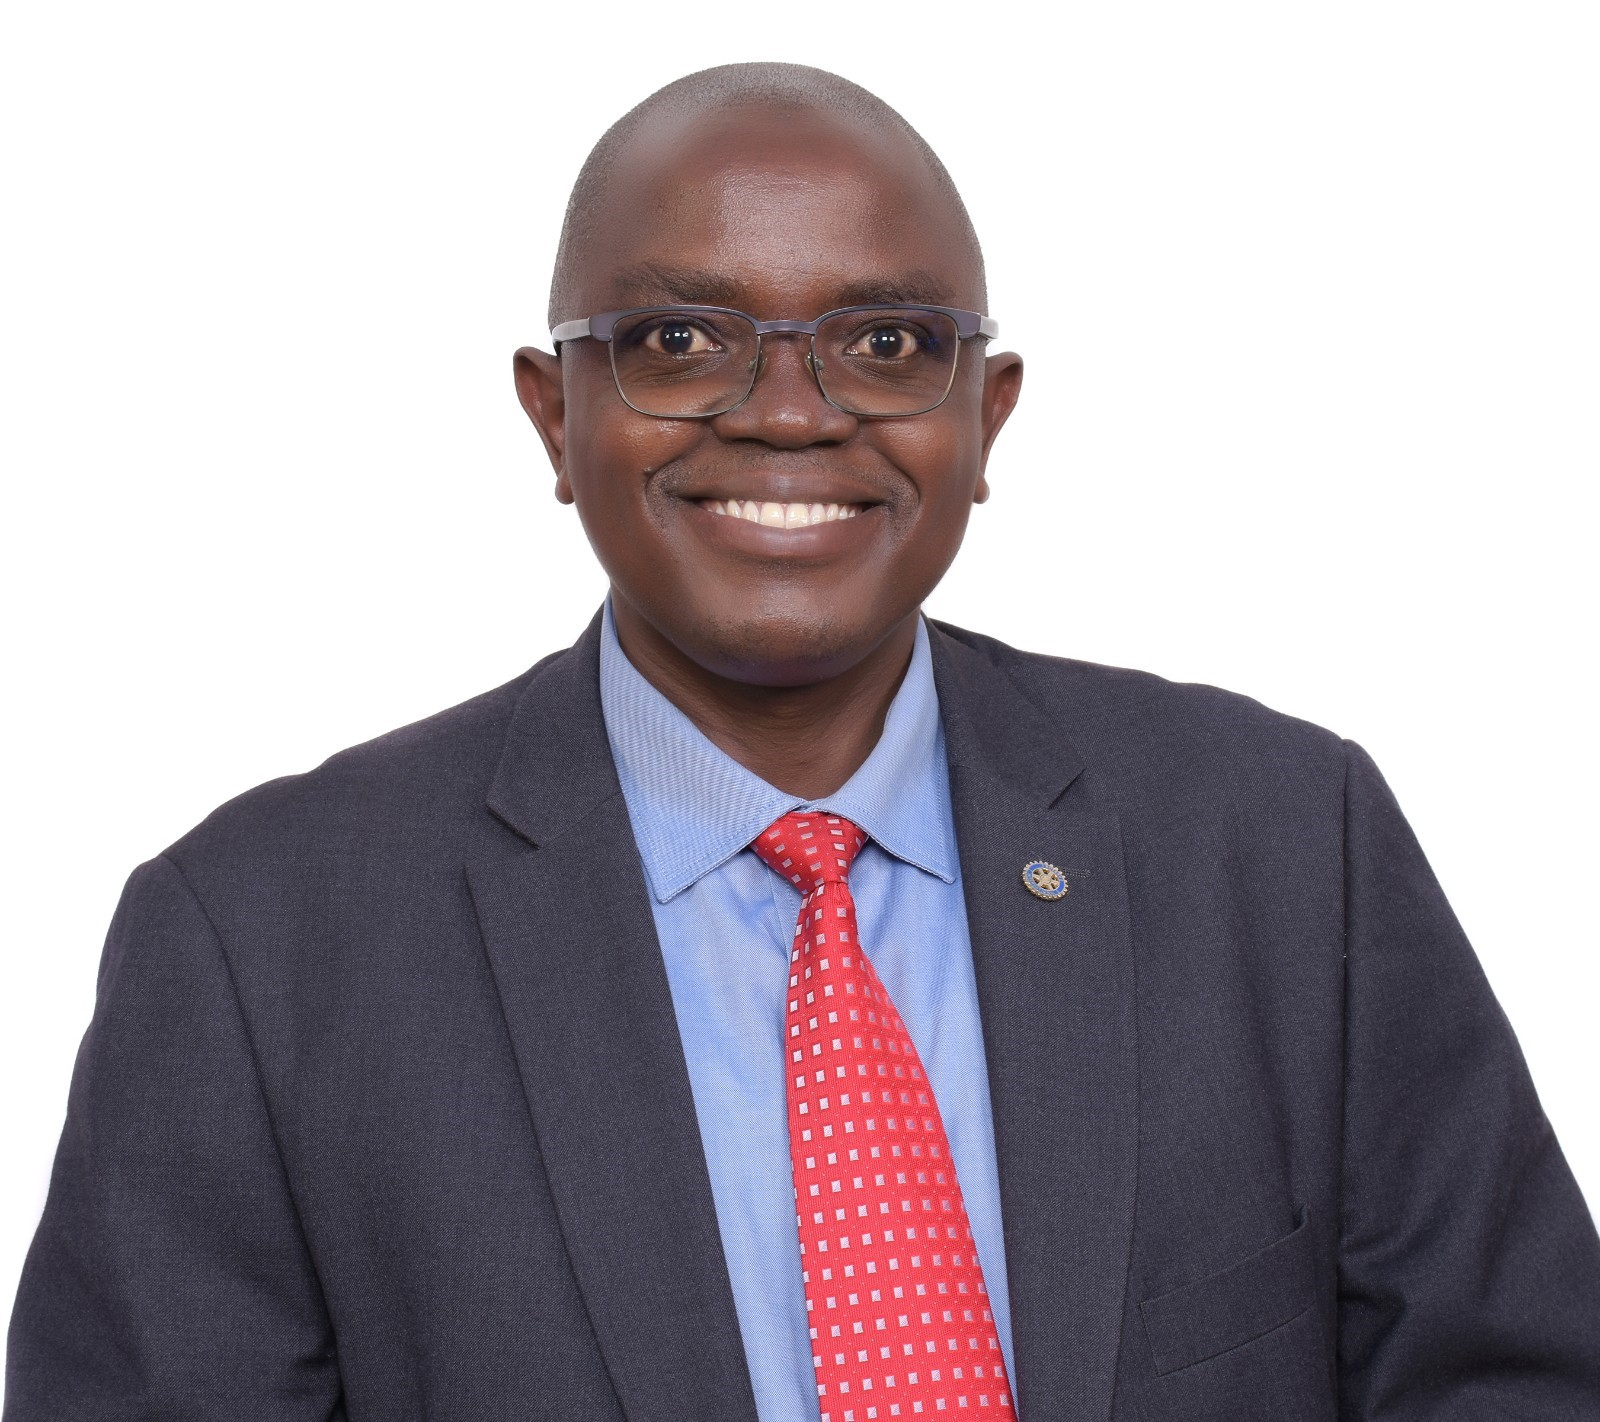 Mr. Othieno is a Partner at CMK & Co, Certified Public Accountants (PHOTO/Courtesy).